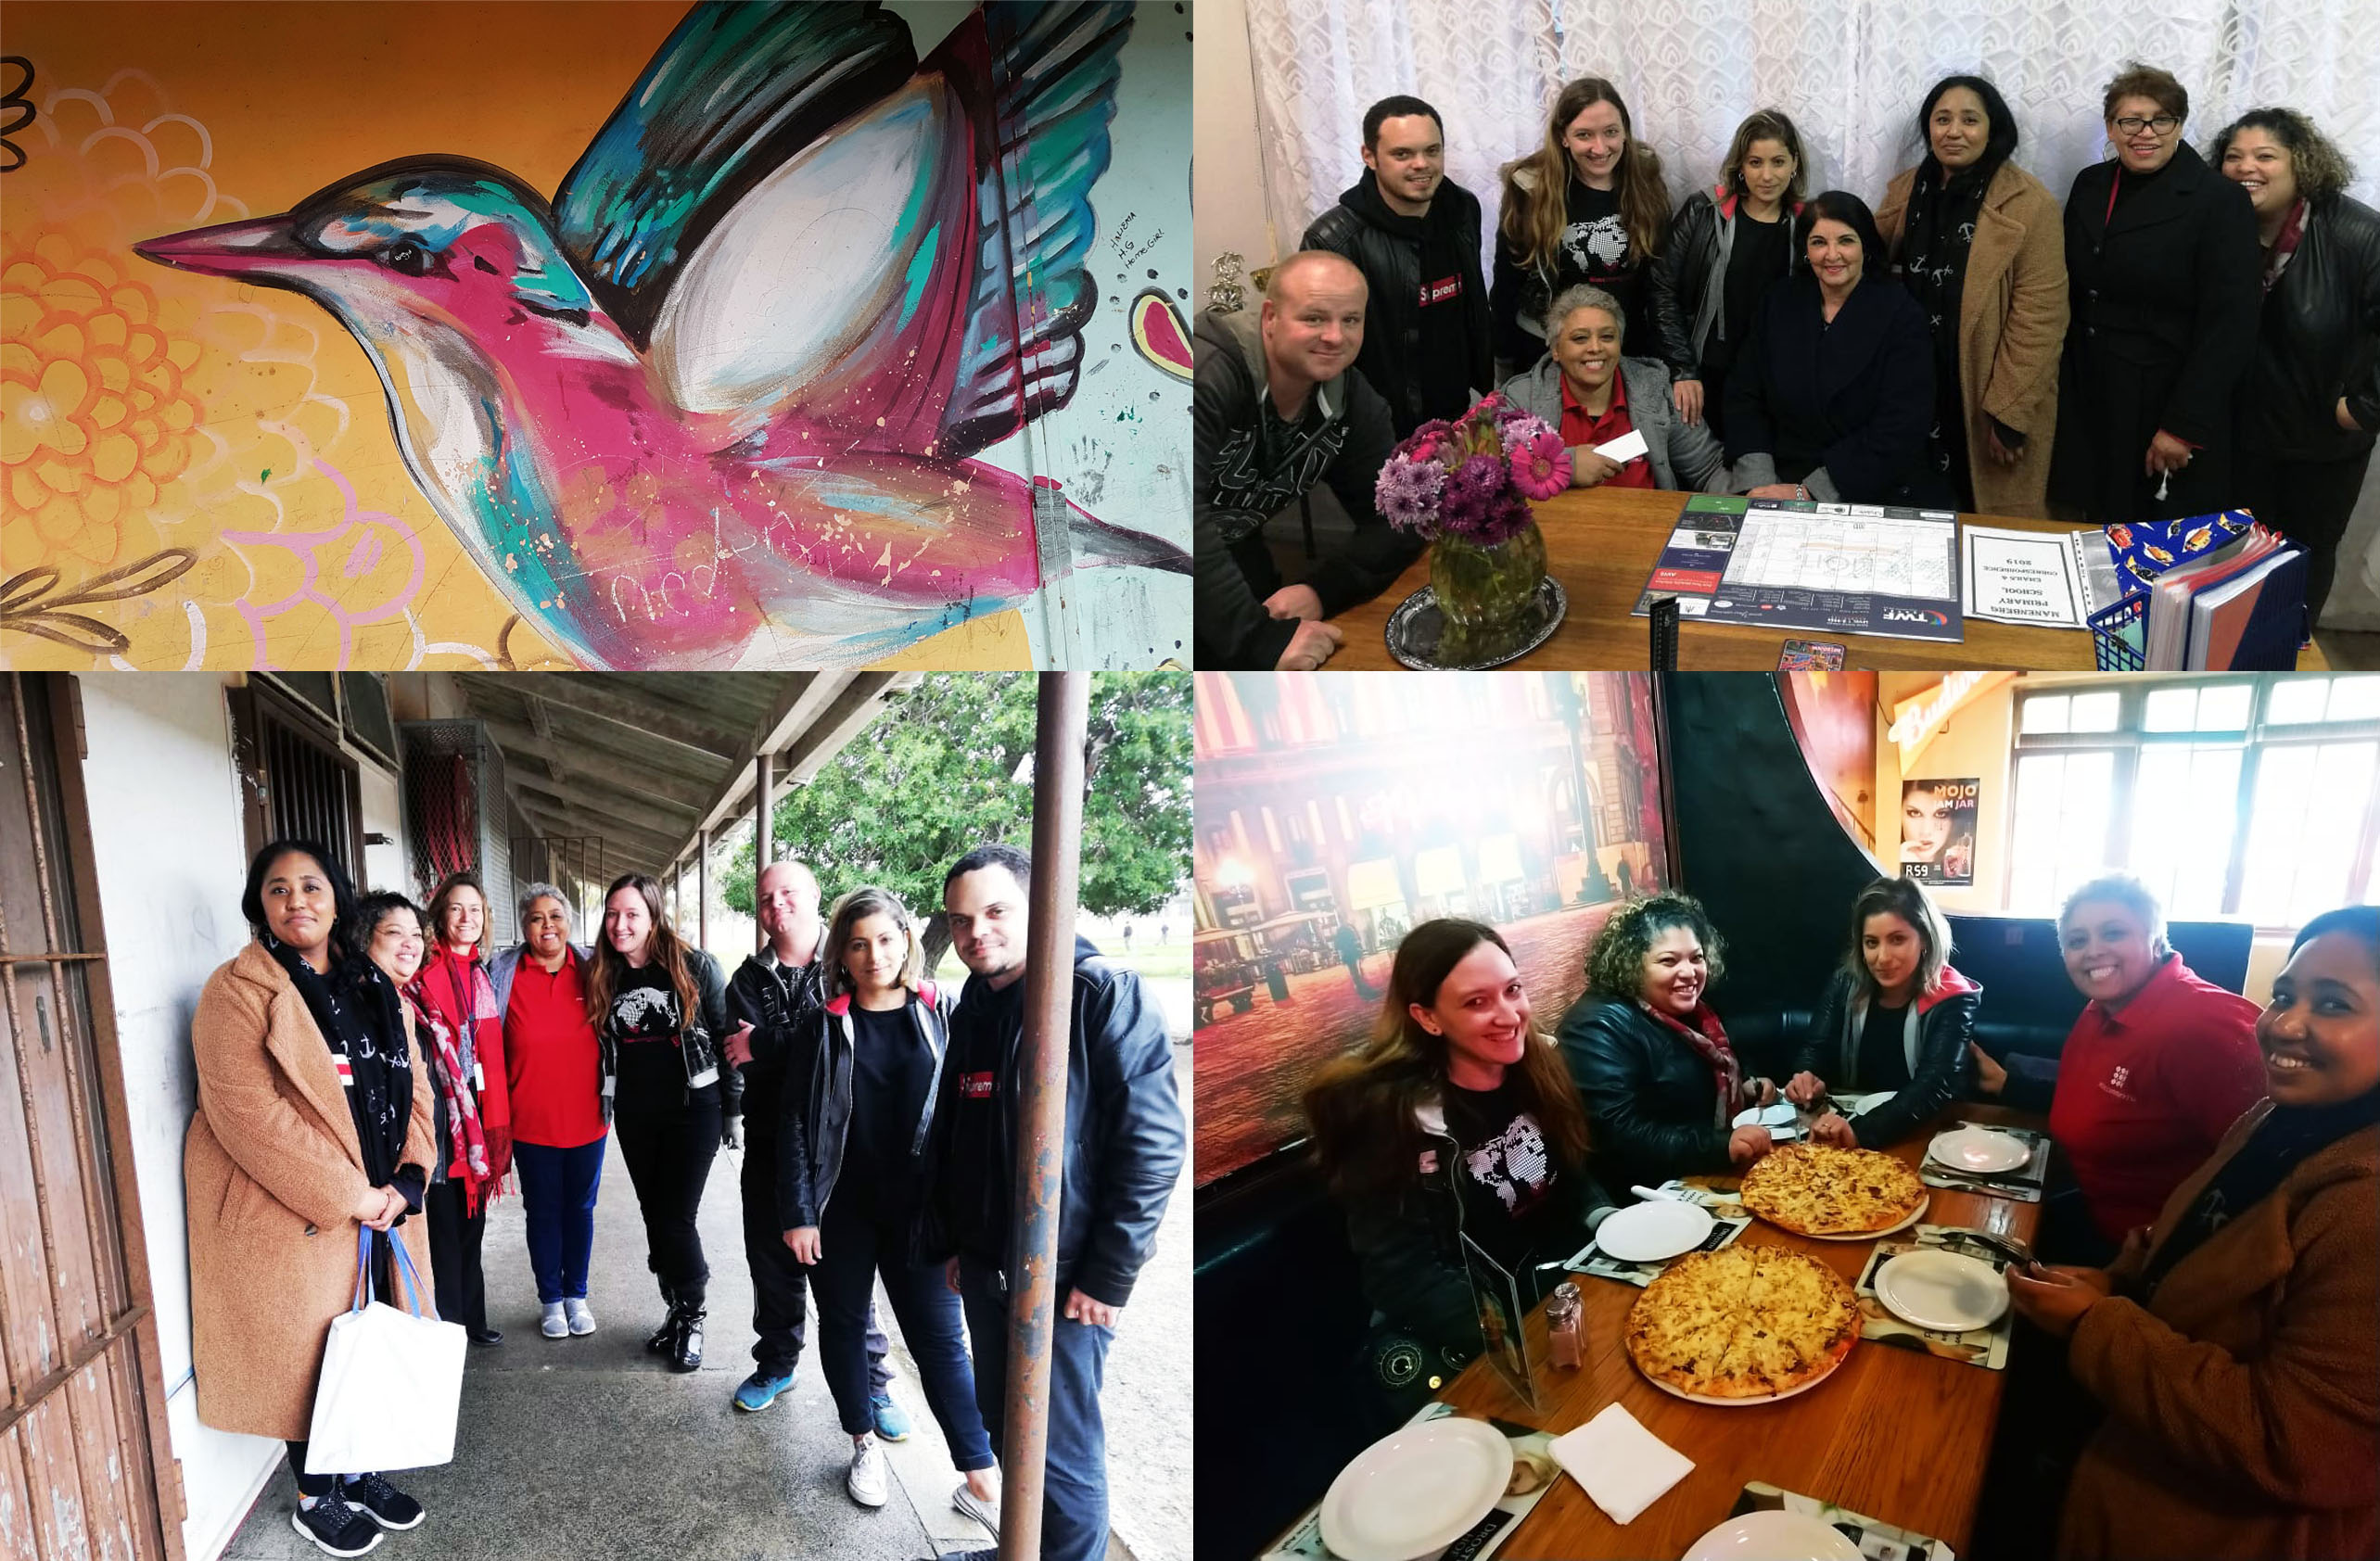 A bit of rain didn't stop the team's 67 Minutes for Mandela Day activities. We delivered sweet treats and bookmarks to all the kiddies of Manenberg Primary School, and read to 70 learners from the grade 1 and 2 classes. Also see the pretty birdie painted on one of the exterior classroom walls, and our quick team pizza lunch at Ashley's Family Restaurant post-event.